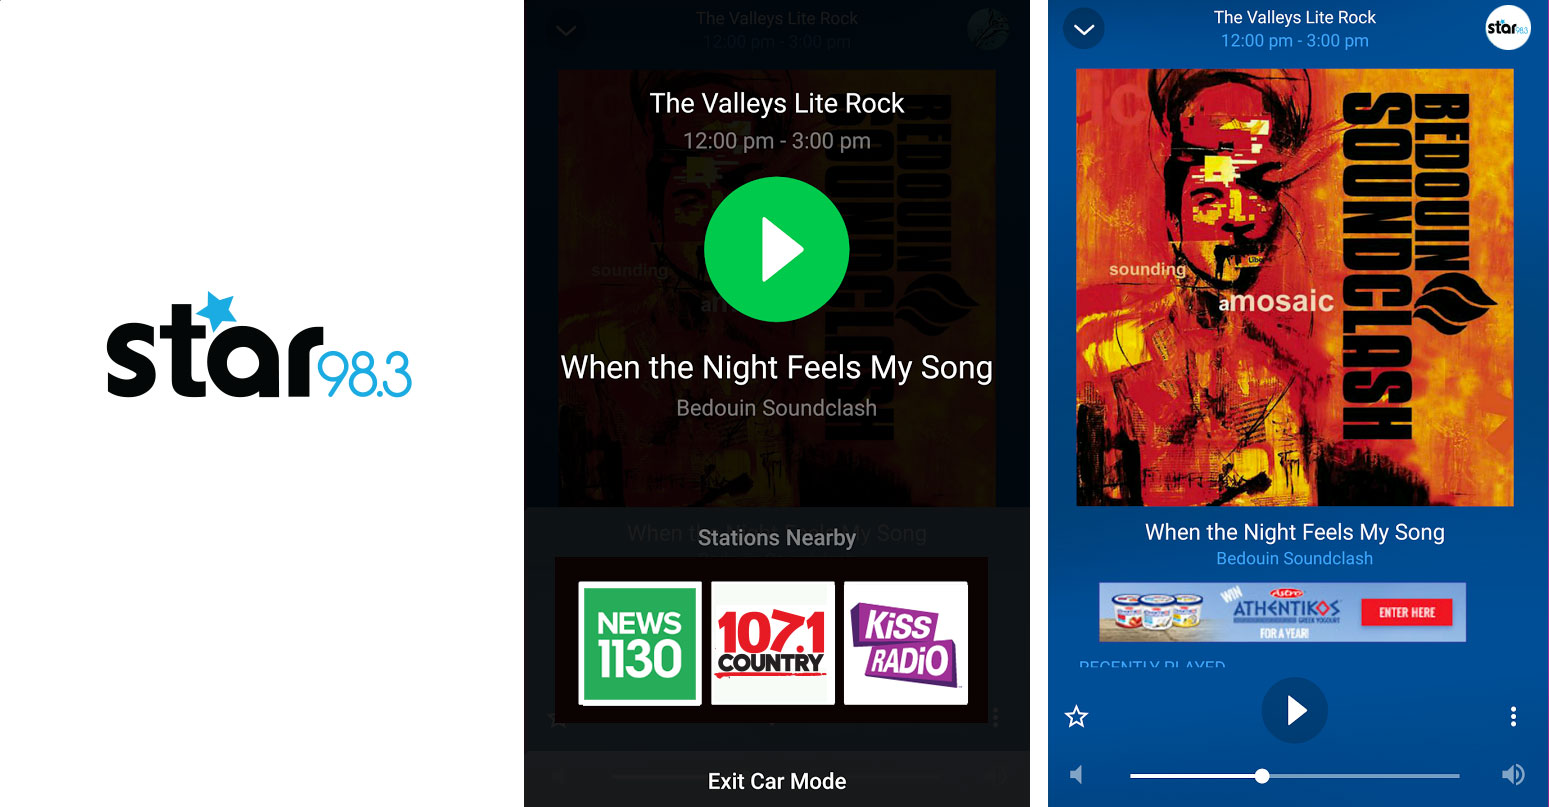 We've completely re-imagined and re-designed the Star 98.3 app! Check out the updates and let us know what you think!